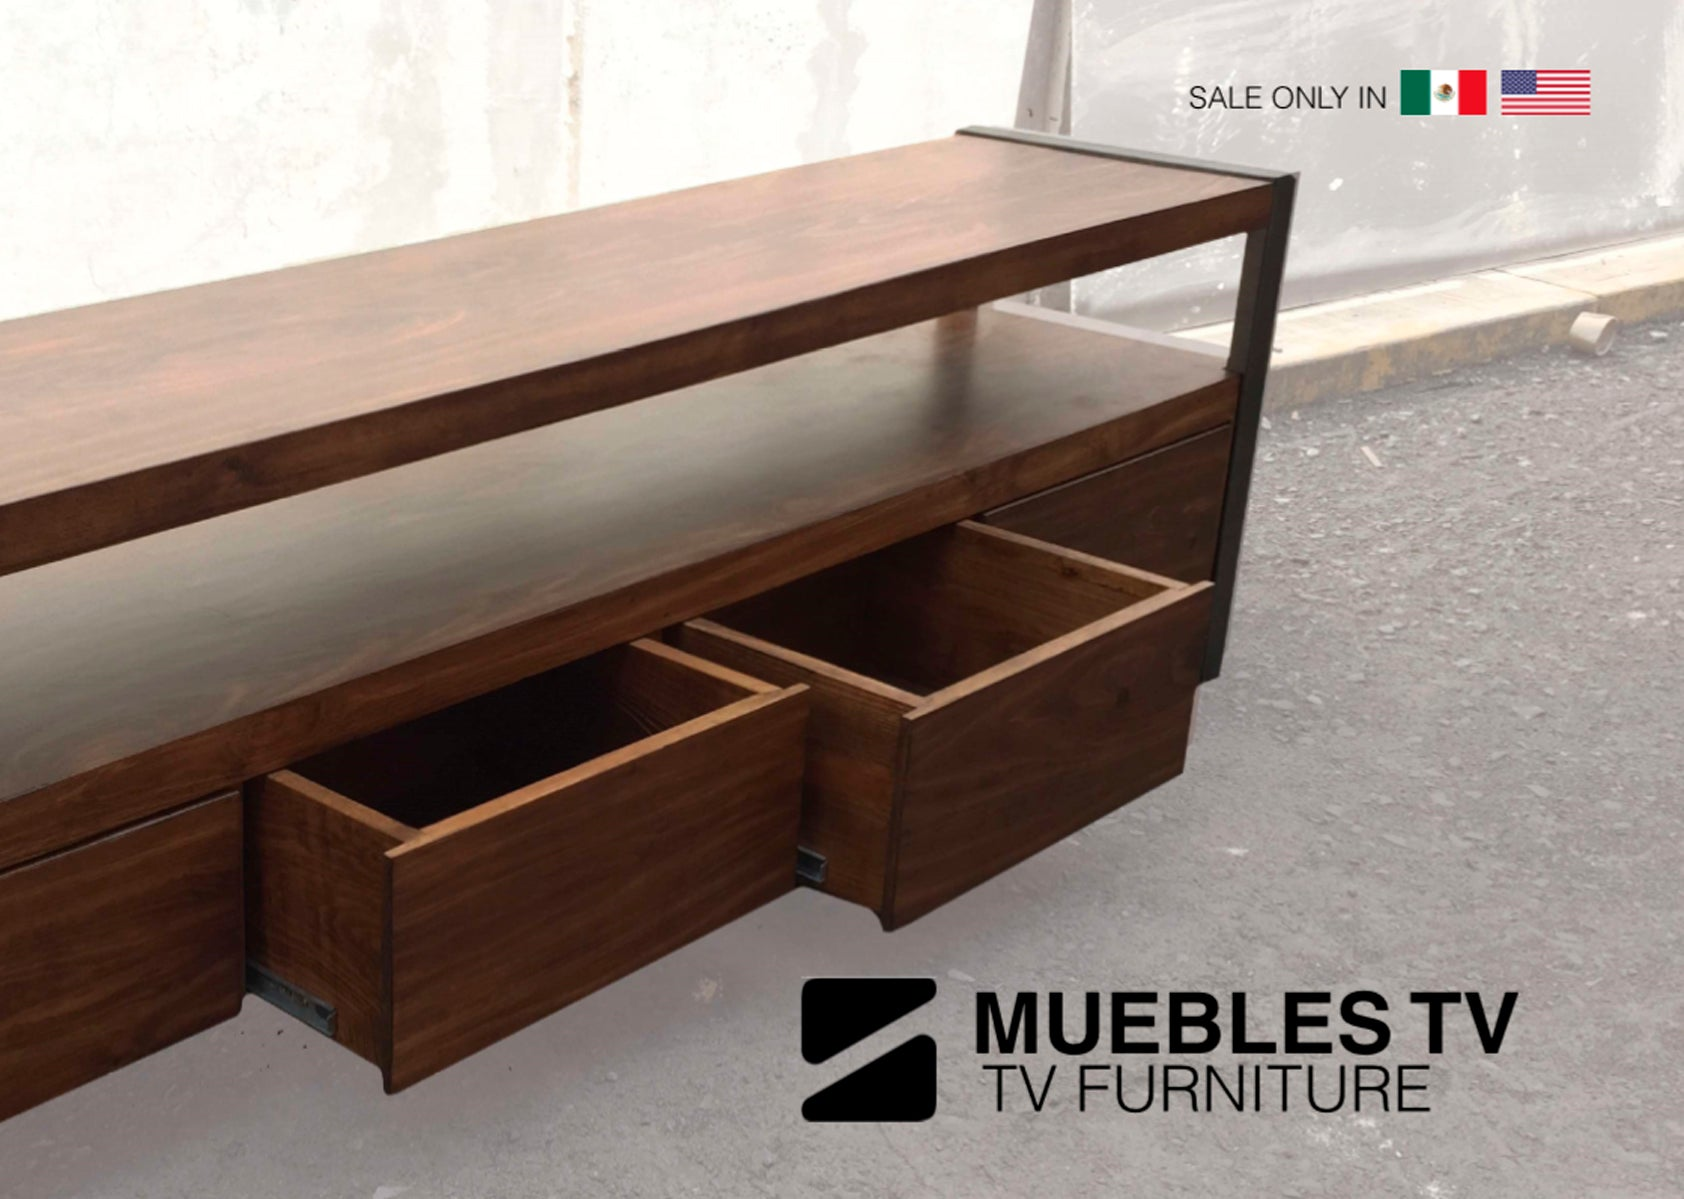 MUEBLES TV // TV FURNITURE